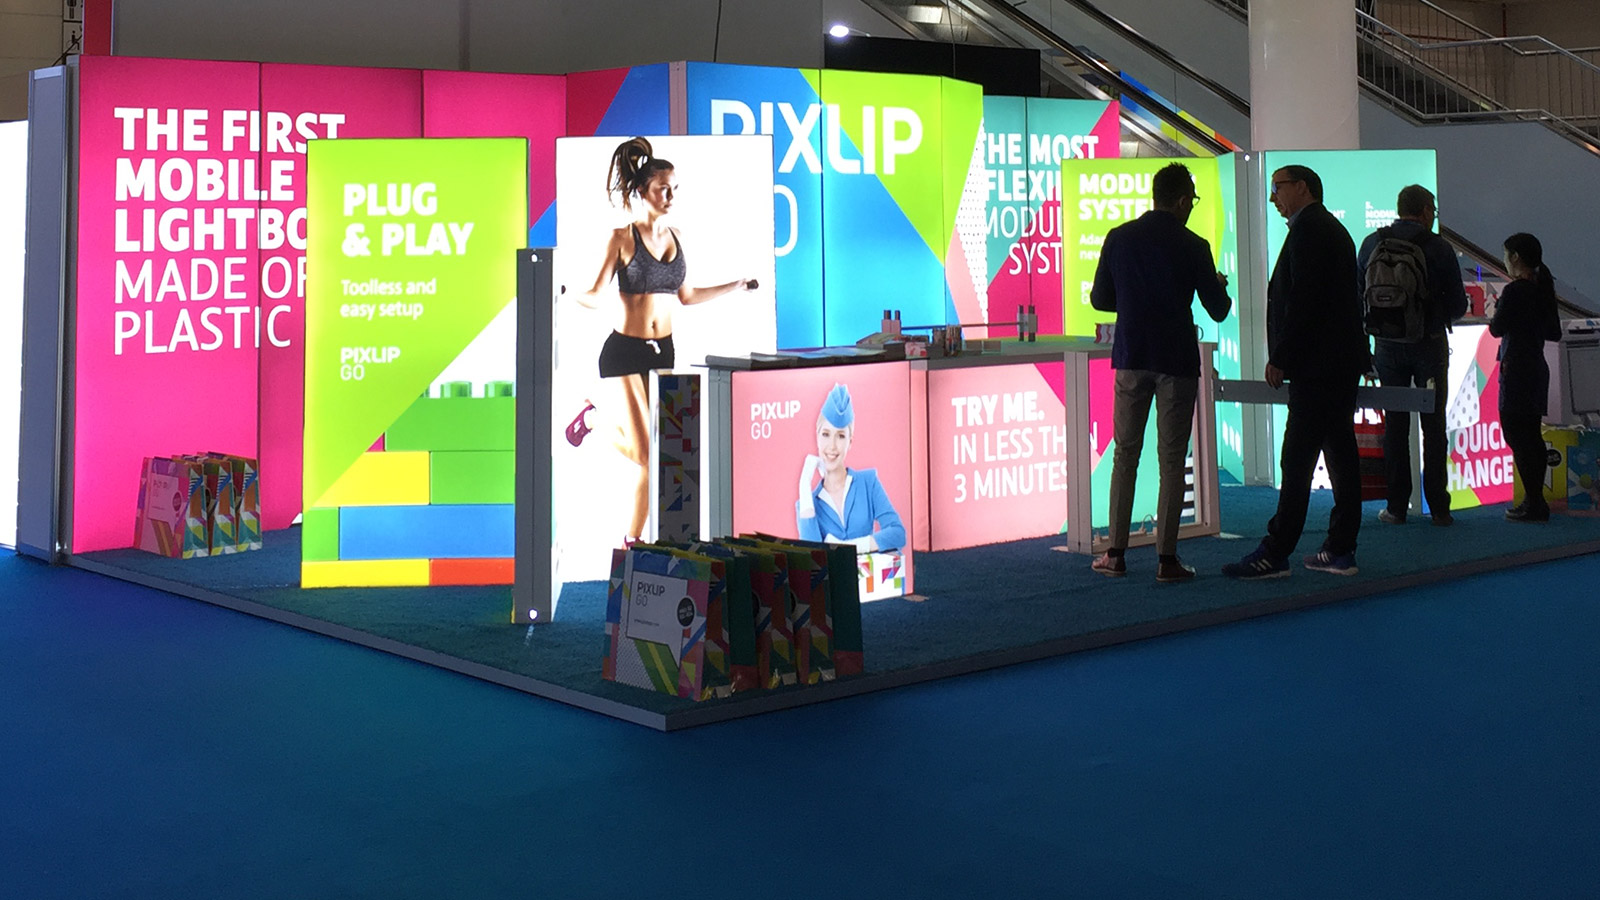 Bright Pixlip Go booth on the Fespa 2017 with visitors